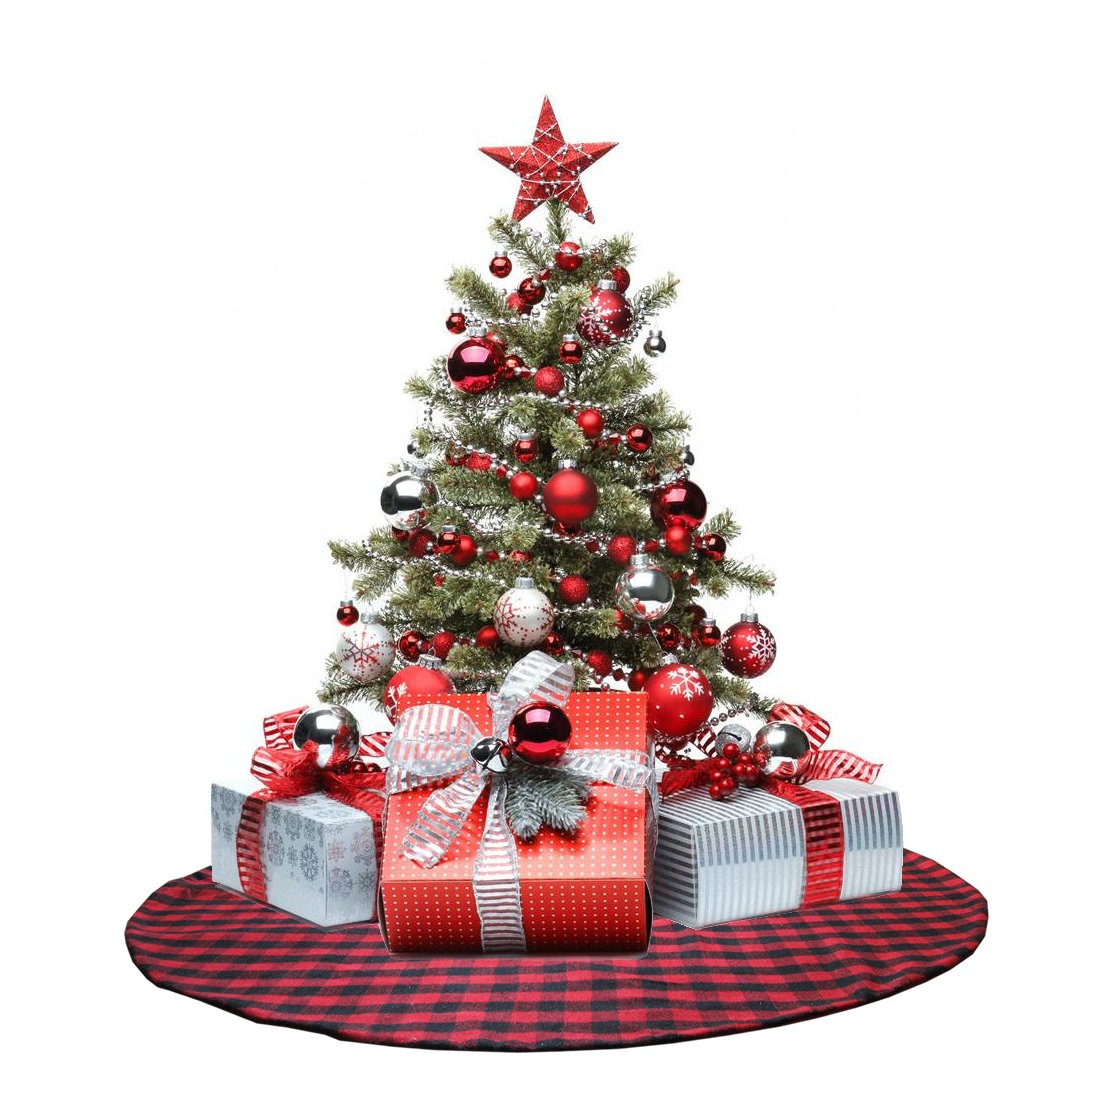 EDLDECCO 48 inch Christmas Tree Skirt with Red and Black Buffalo Check Tree Skirt Double layers a Fine Decorative Handicraft for Holiday Party by EDLDECCO